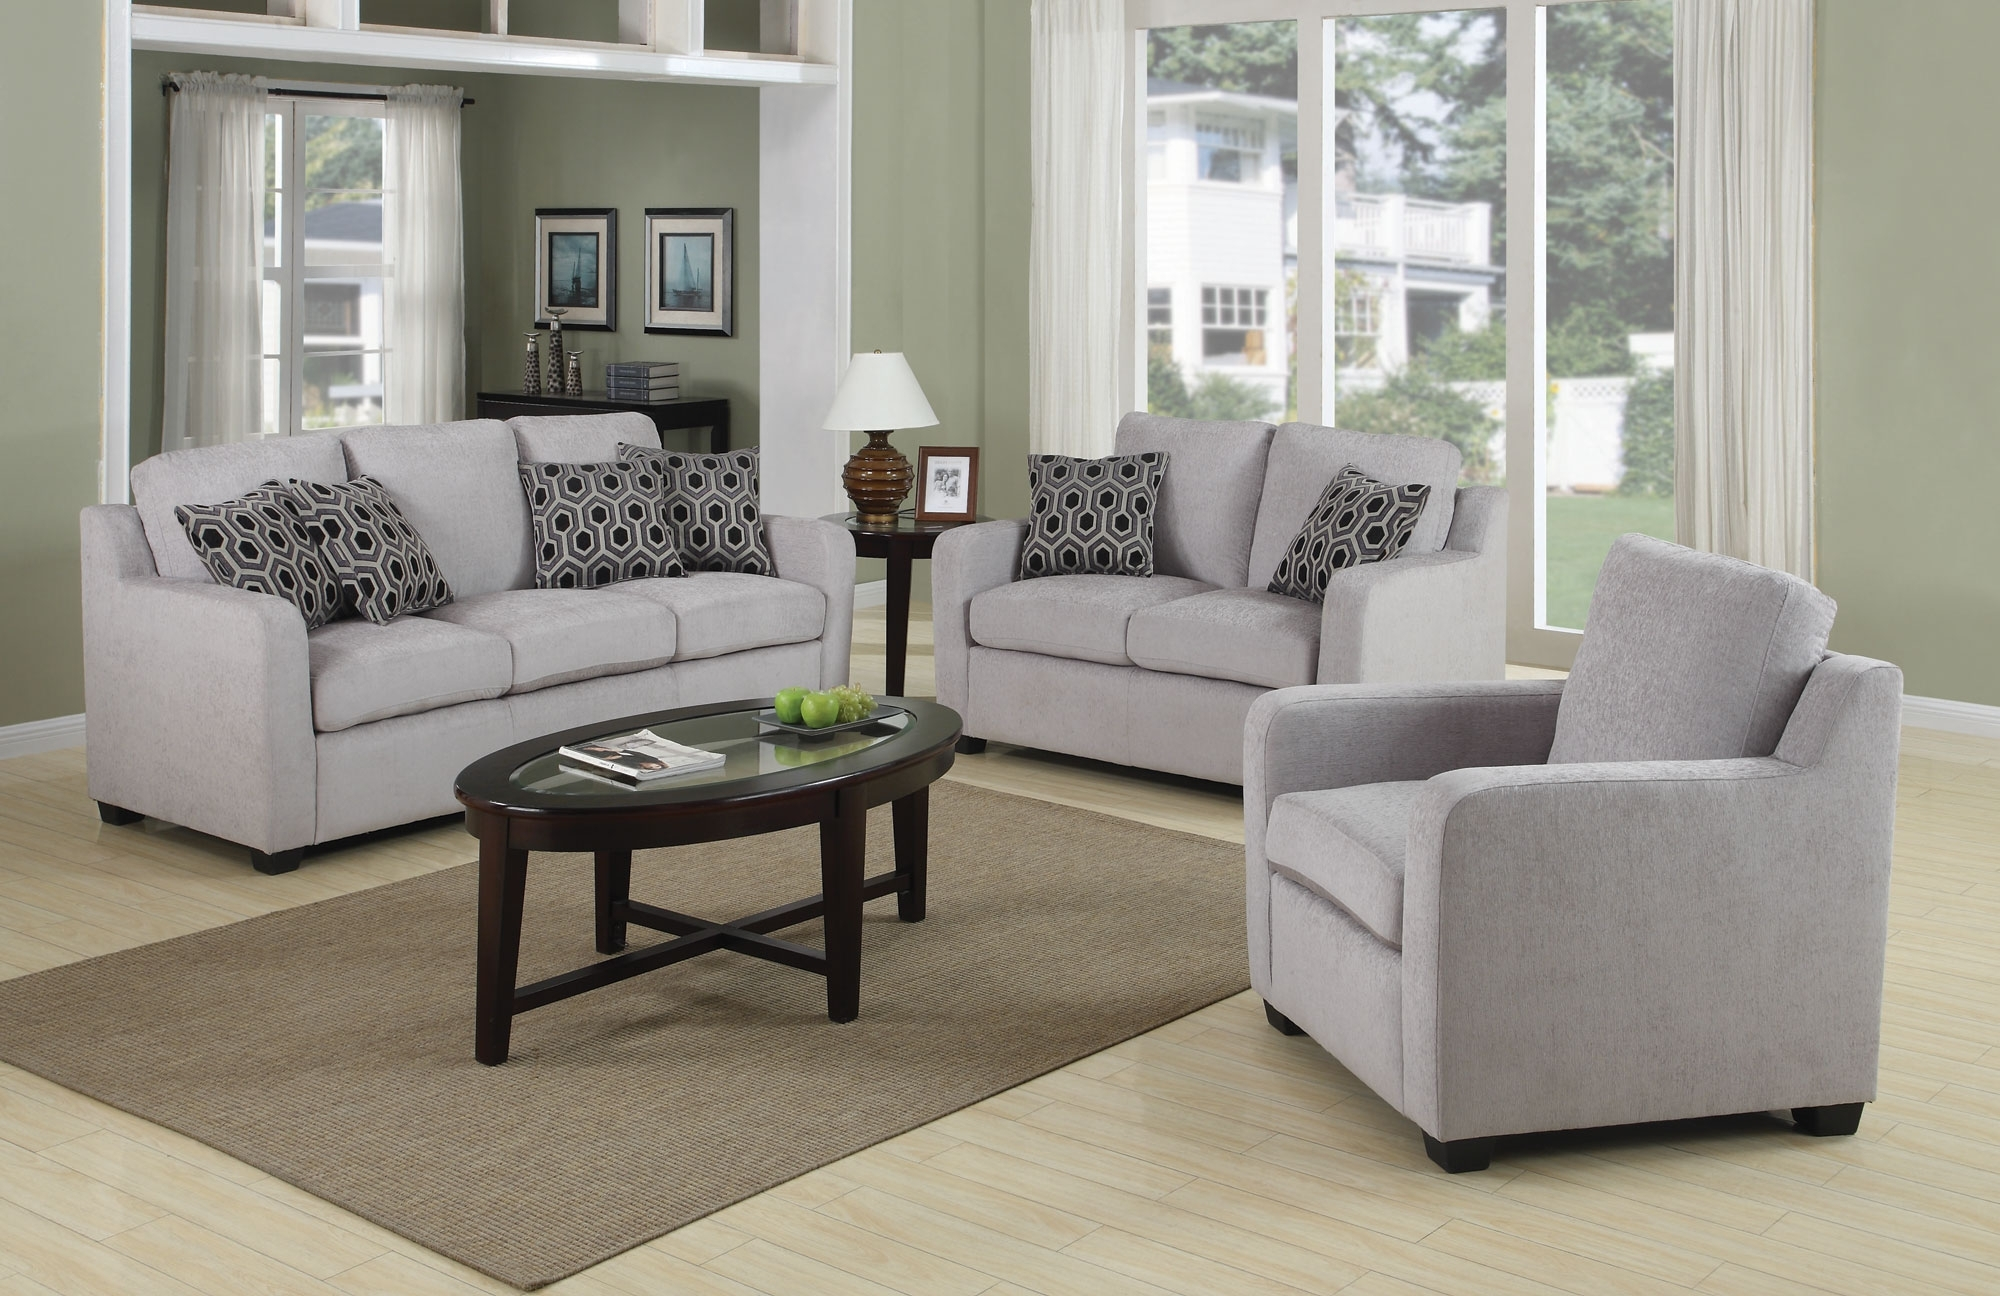 Current Sofa Chairs For Living Room In Furniture: Amazing Set Of Chairs For Living Room 3 Piece Living (View 6 of 20)